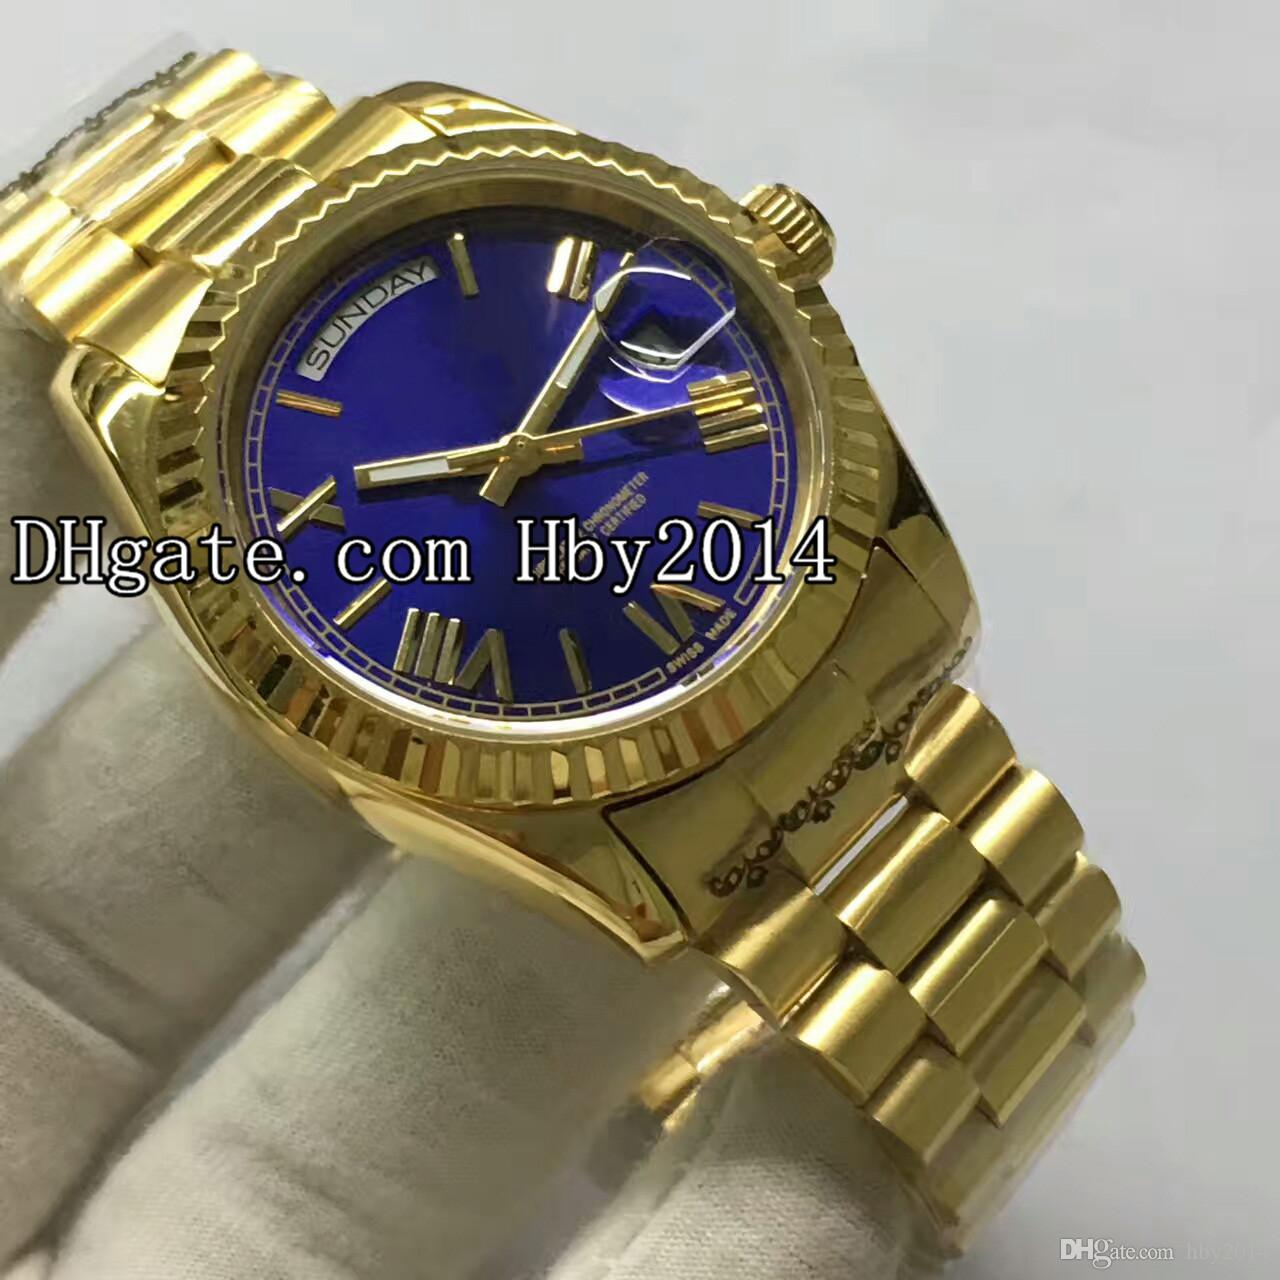 click watches rolex yellow gold zrolex image above enlarge submariner to